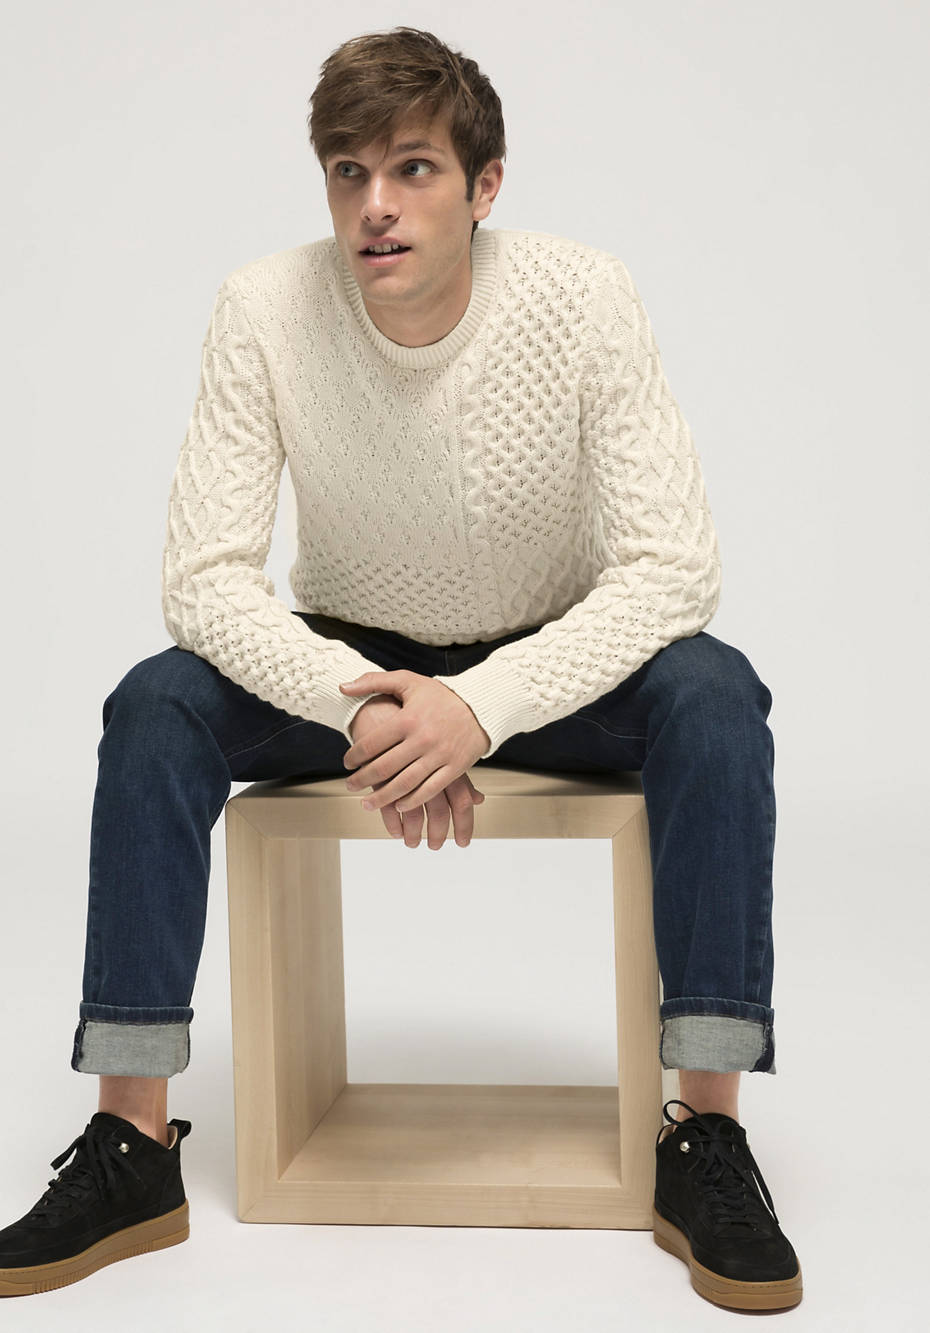 Structured knit sweater made of organic cotton and organic merino wool